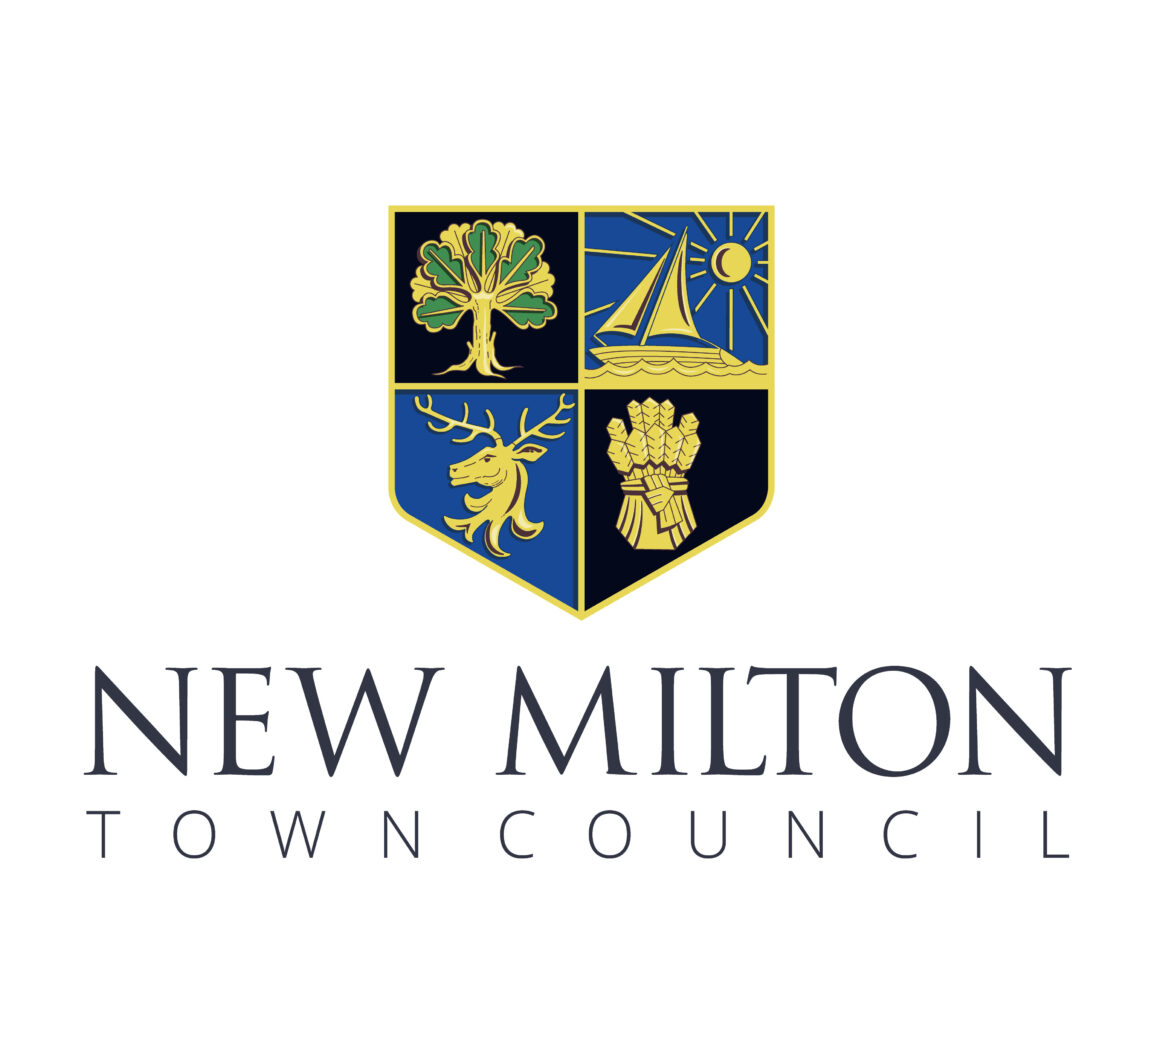 Vacancy for a Town Councillor